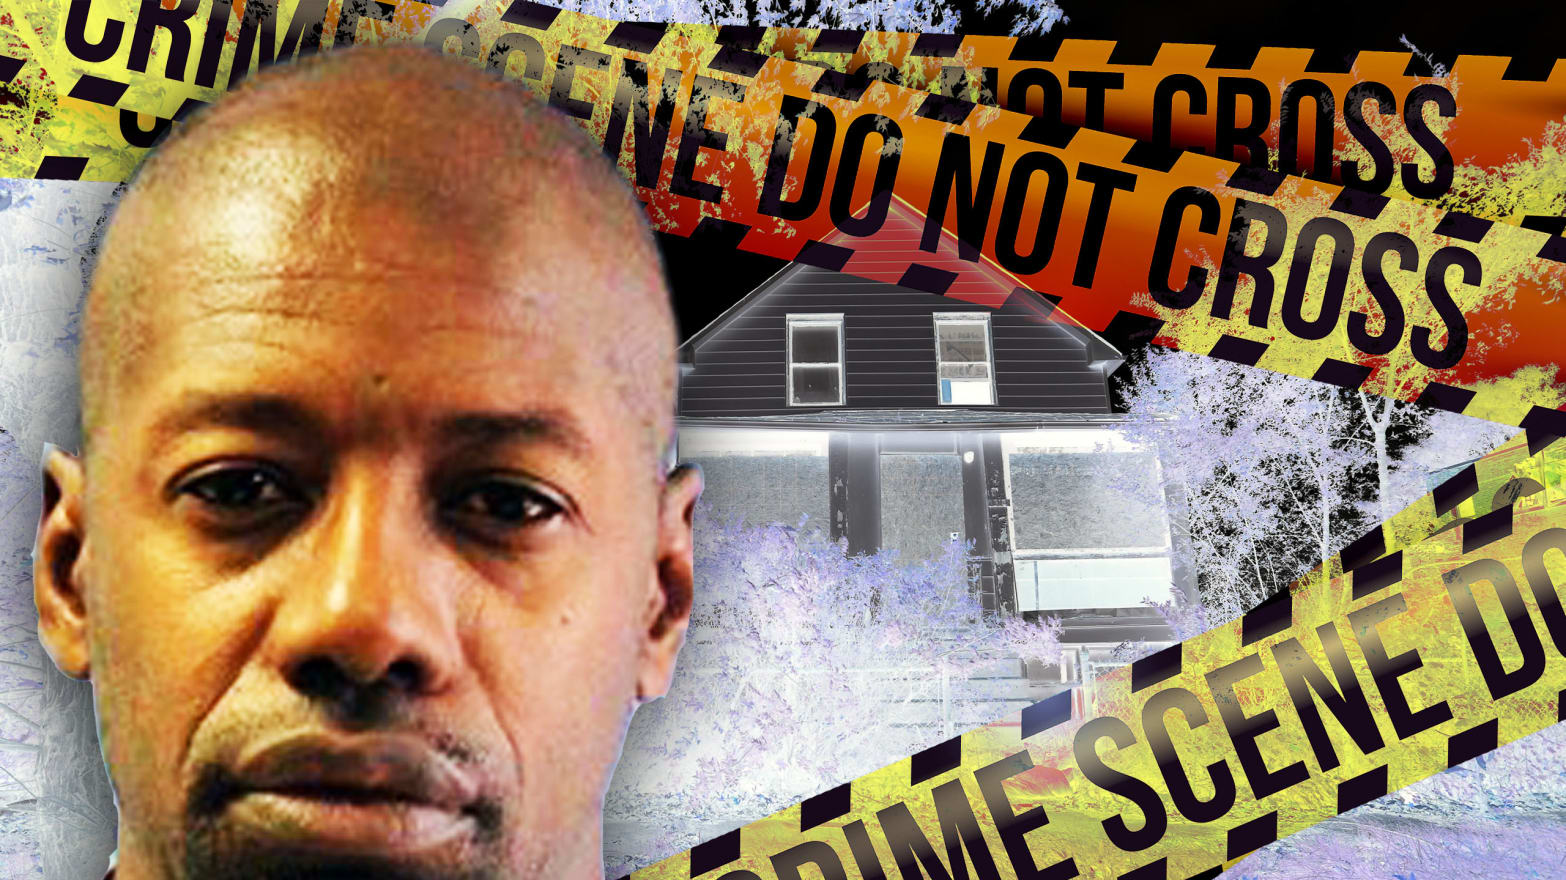 The Gary Strangler Led a Detective on a Tour of His Victims—but Did